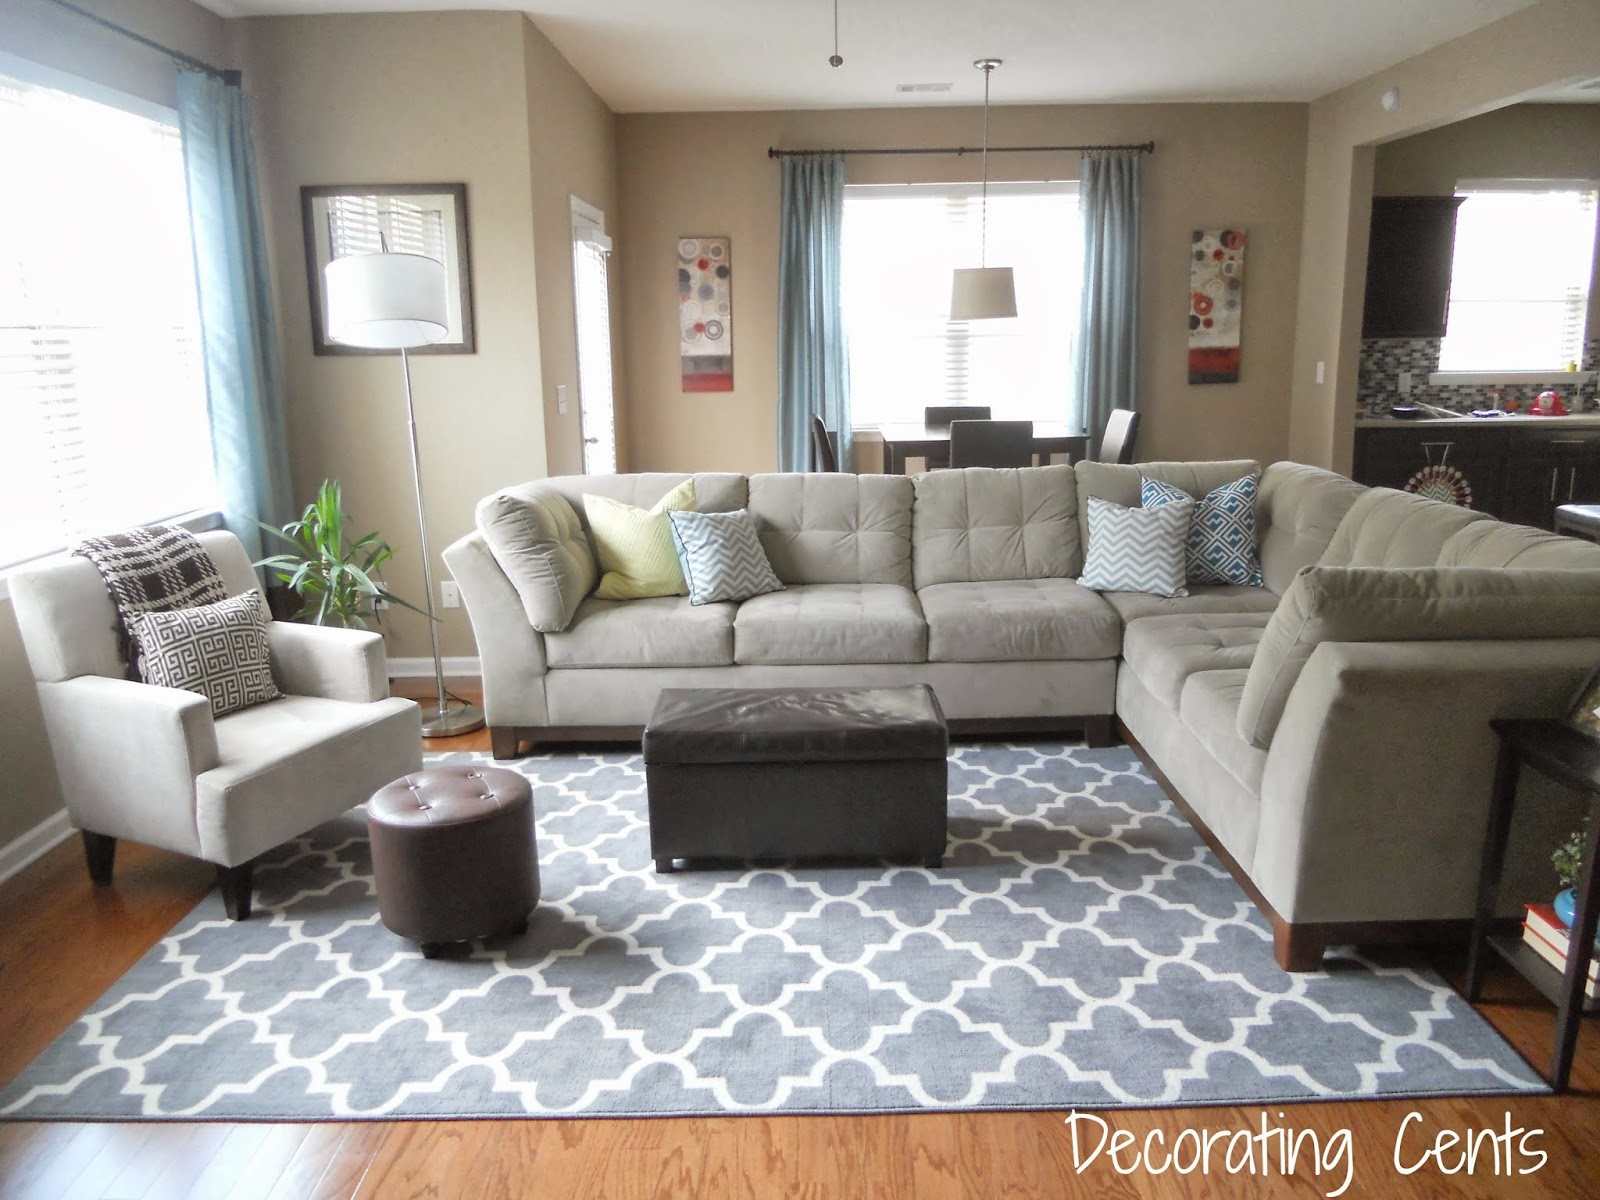 Decorating cents new family room rug for Living room rug placement